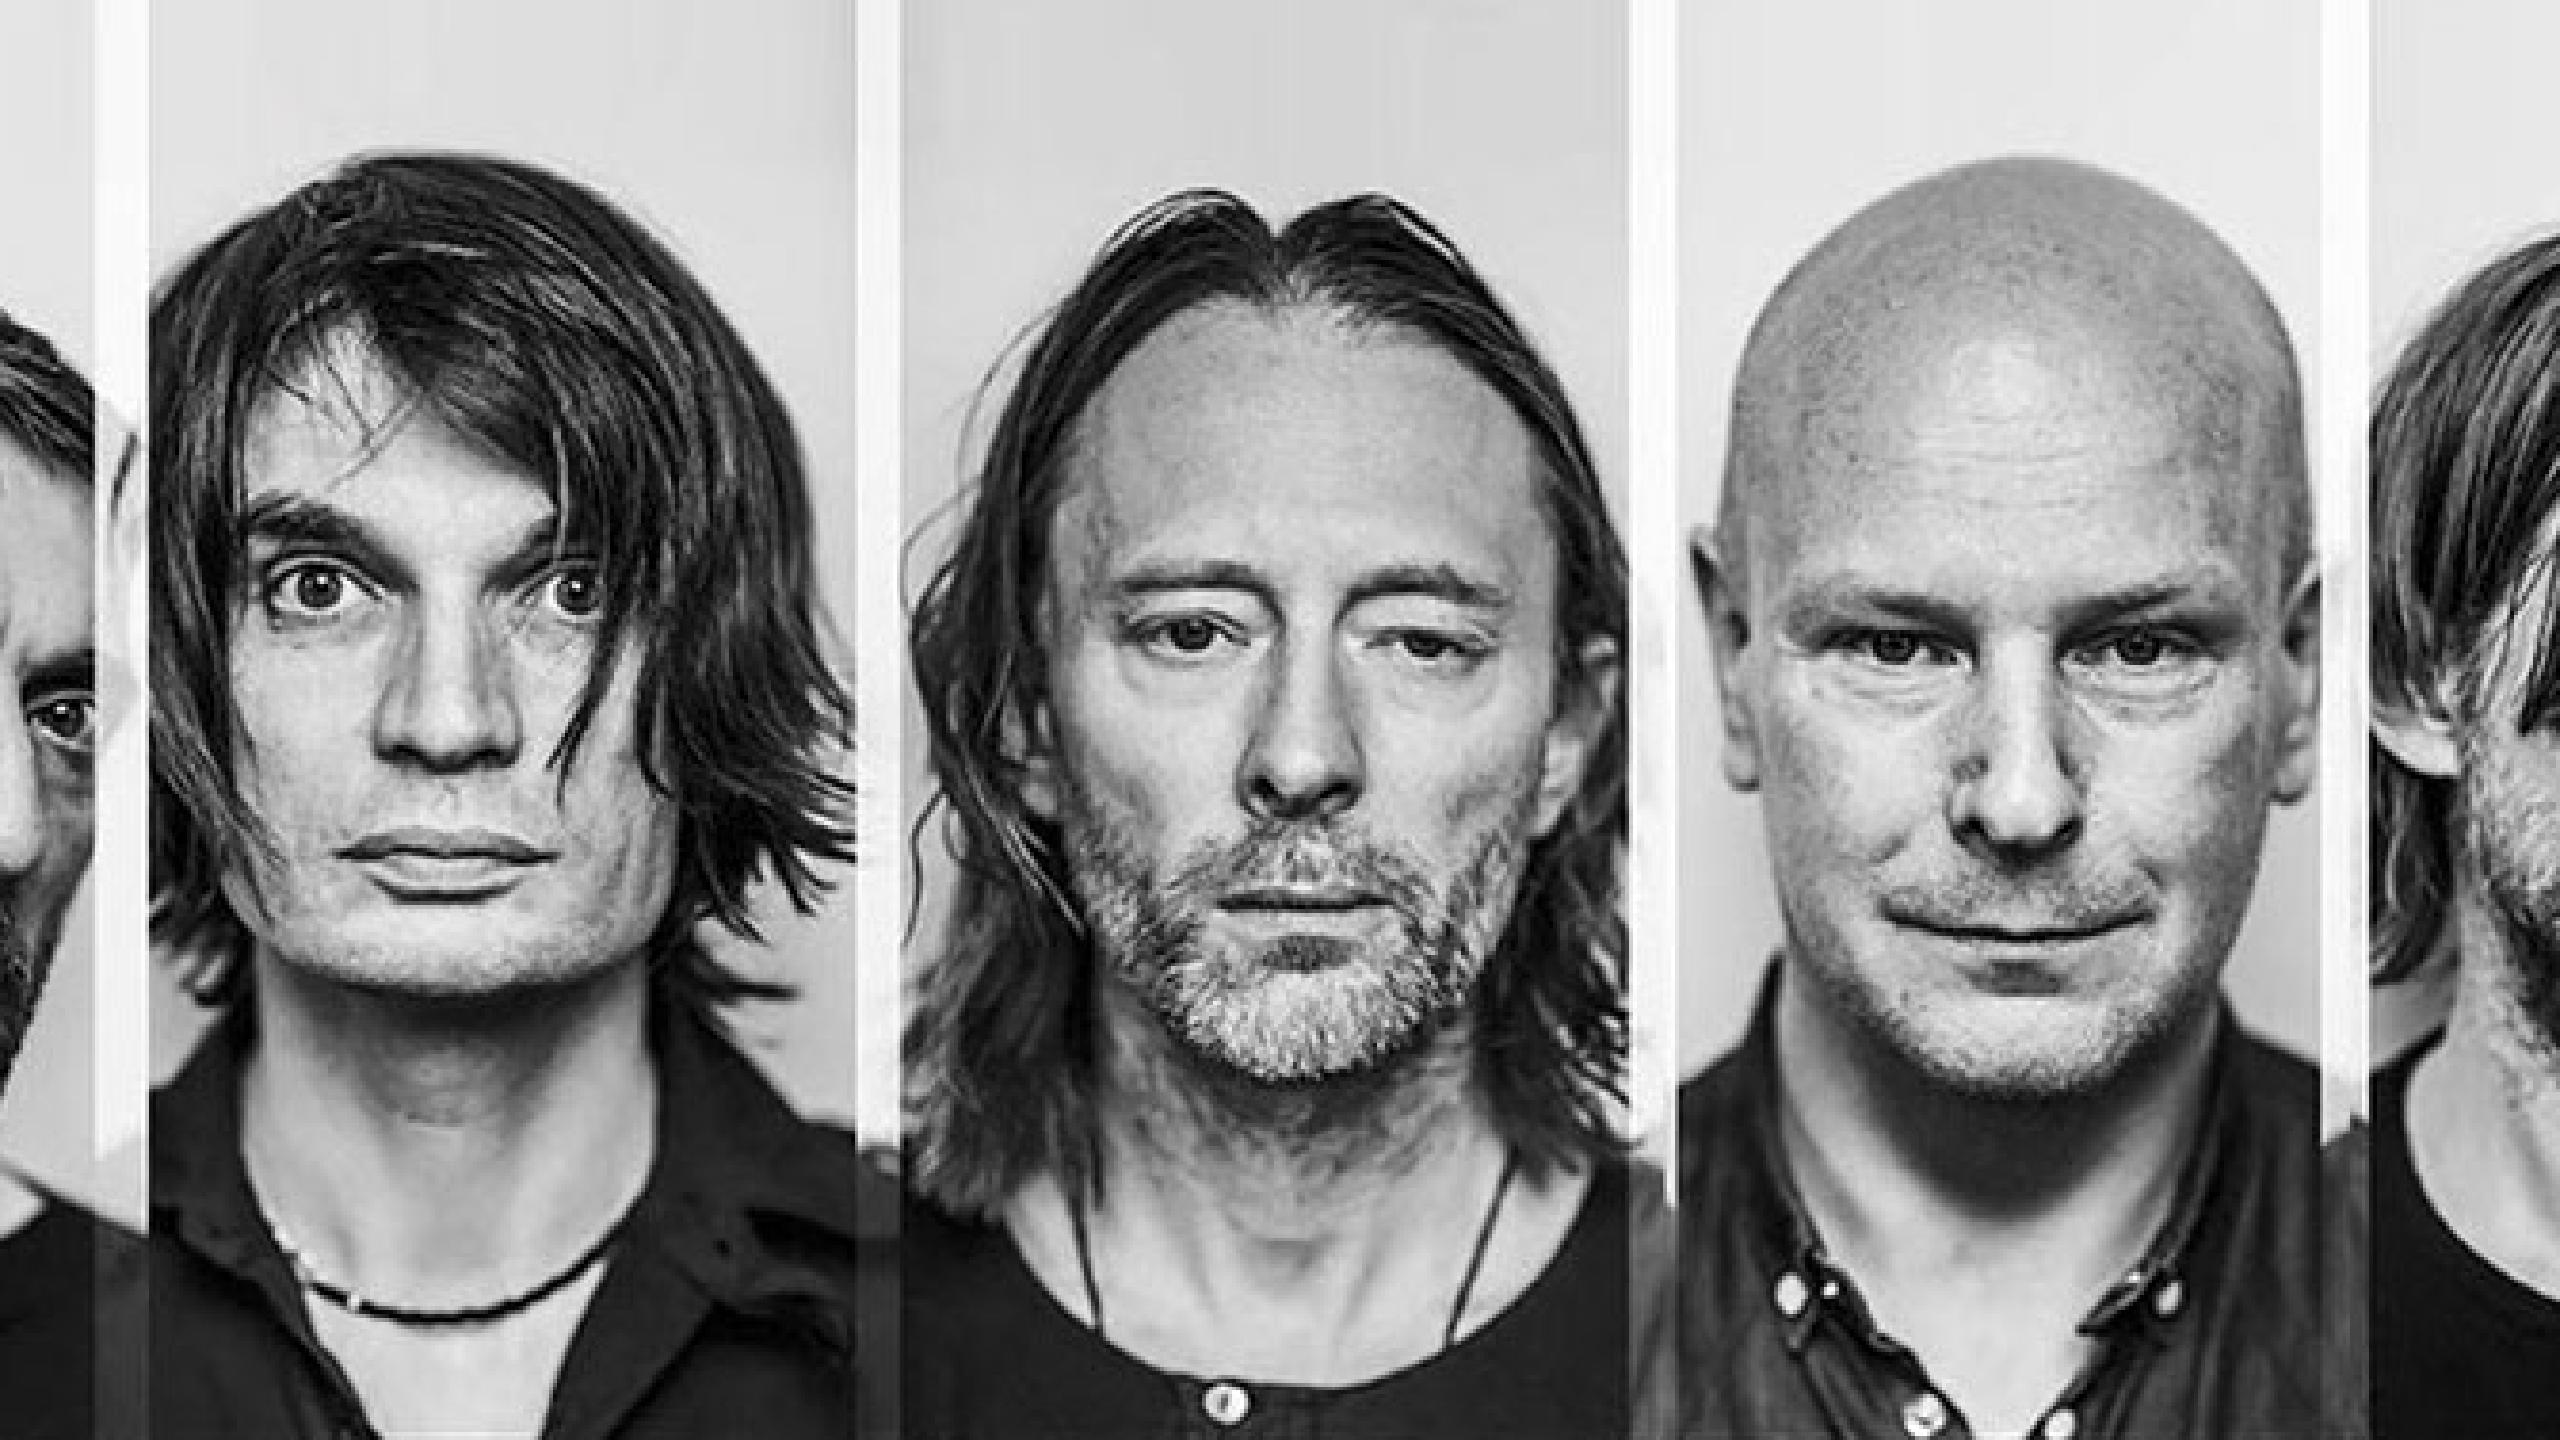 Radiohead Tour 2020.Radiohead Tour Dates 2019 2020 Radiohead Tickets And